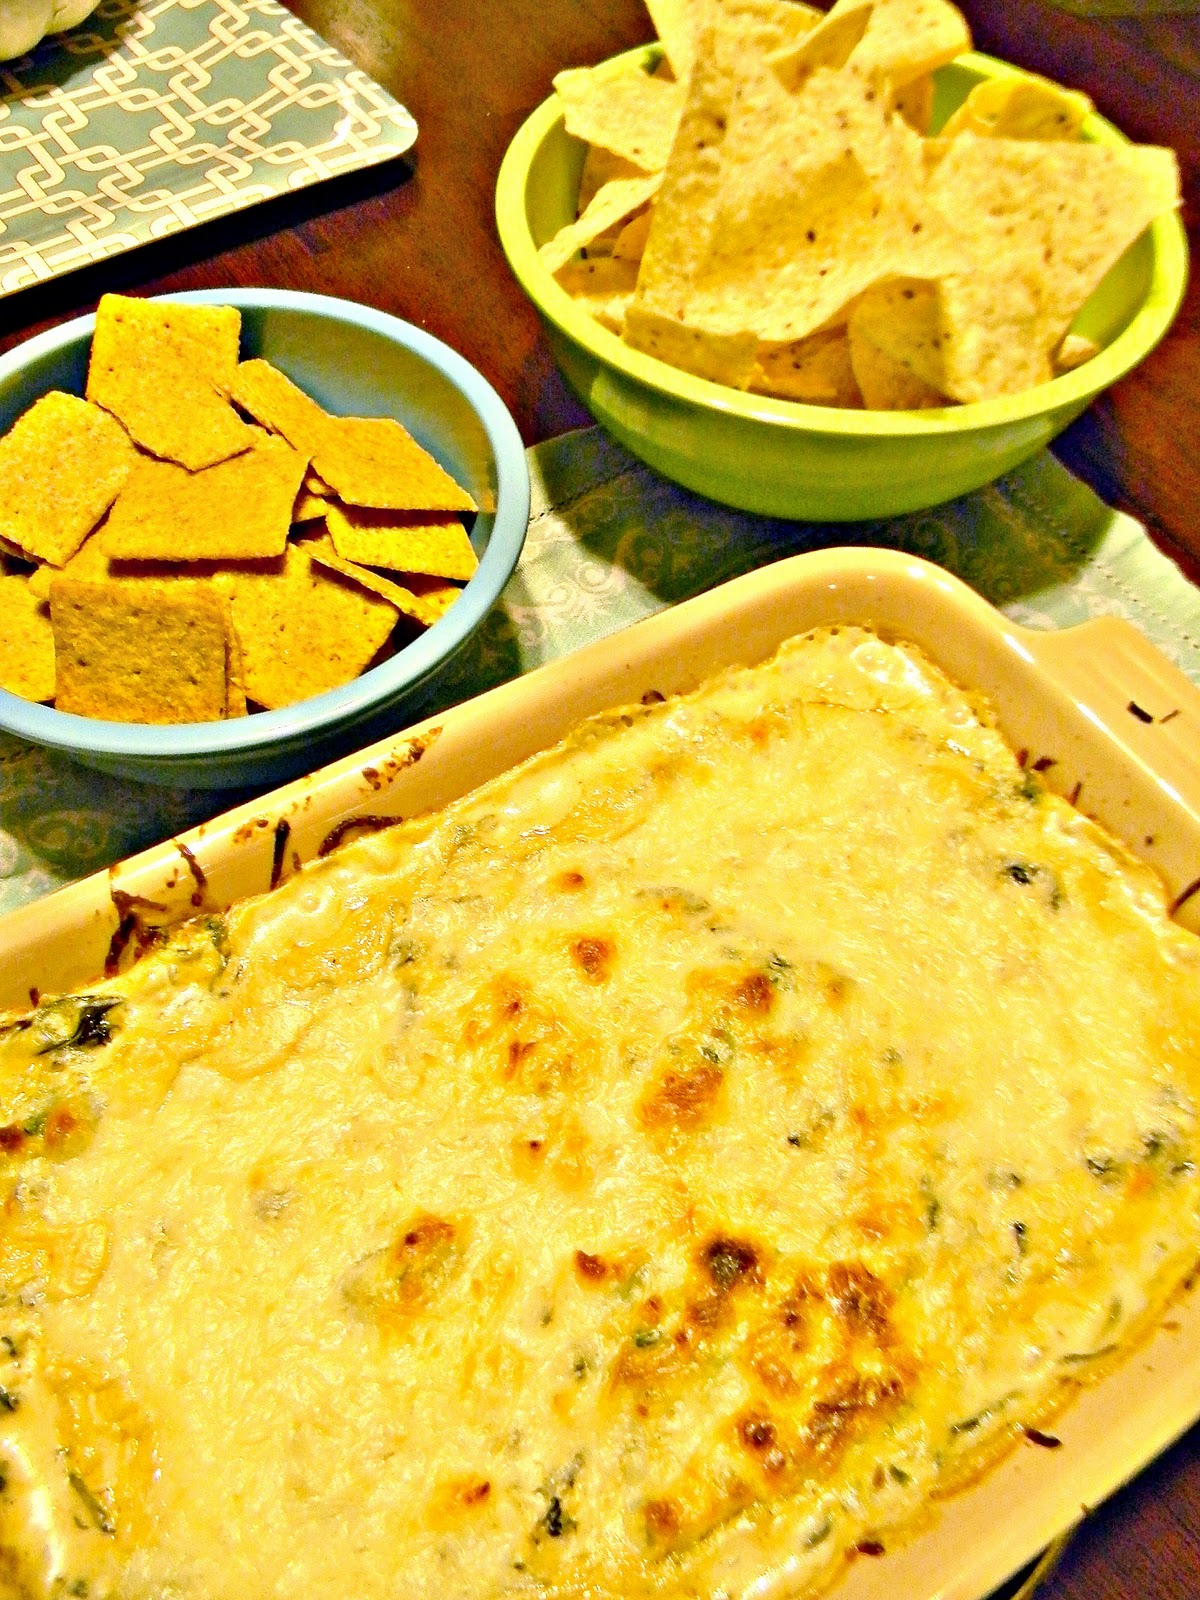 From Dahlias to Doxies: Hot Spinach Dip